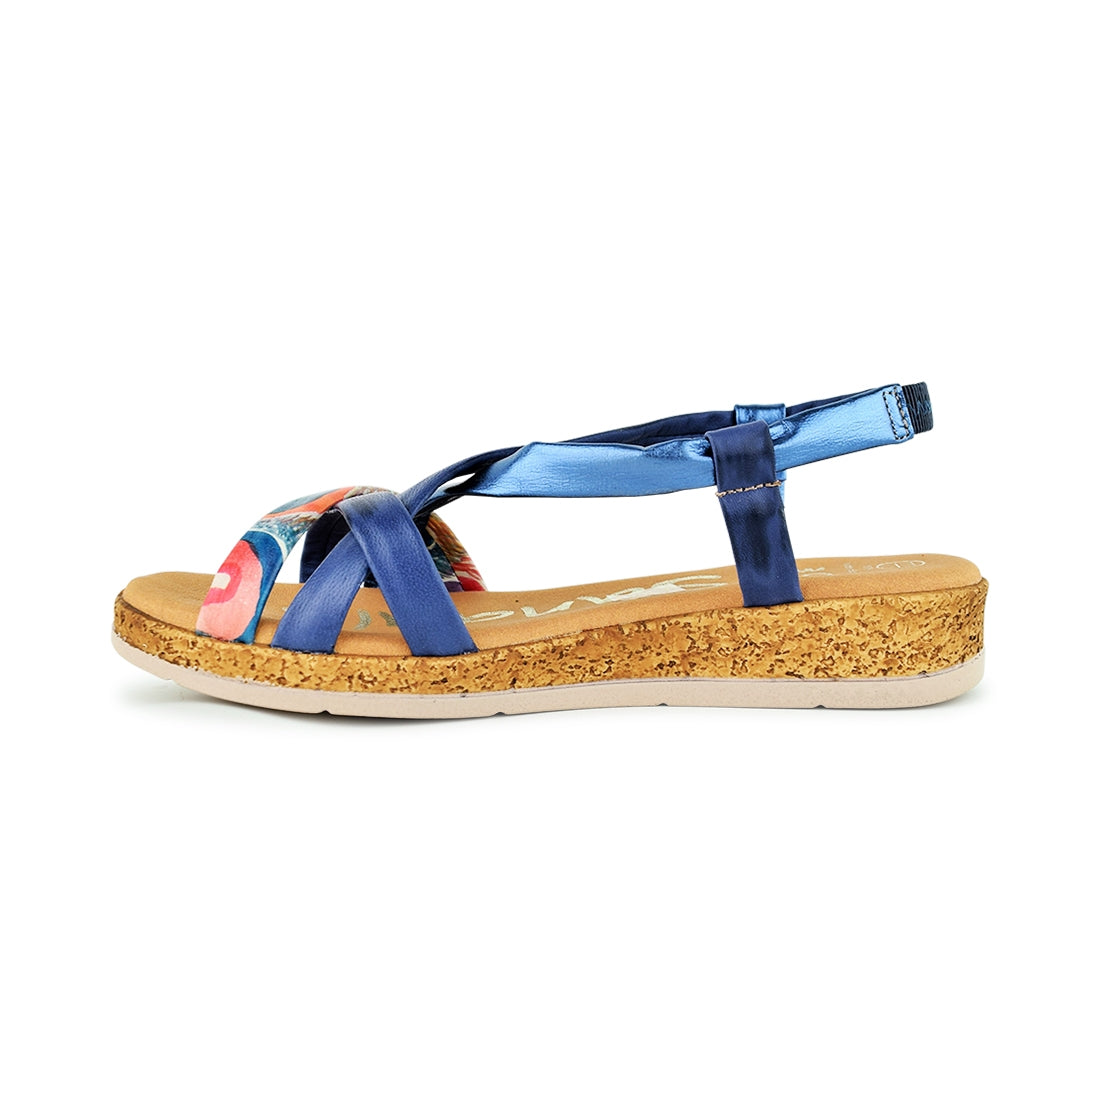 CANDI - Oh My Sandals Sandal Navy Multi